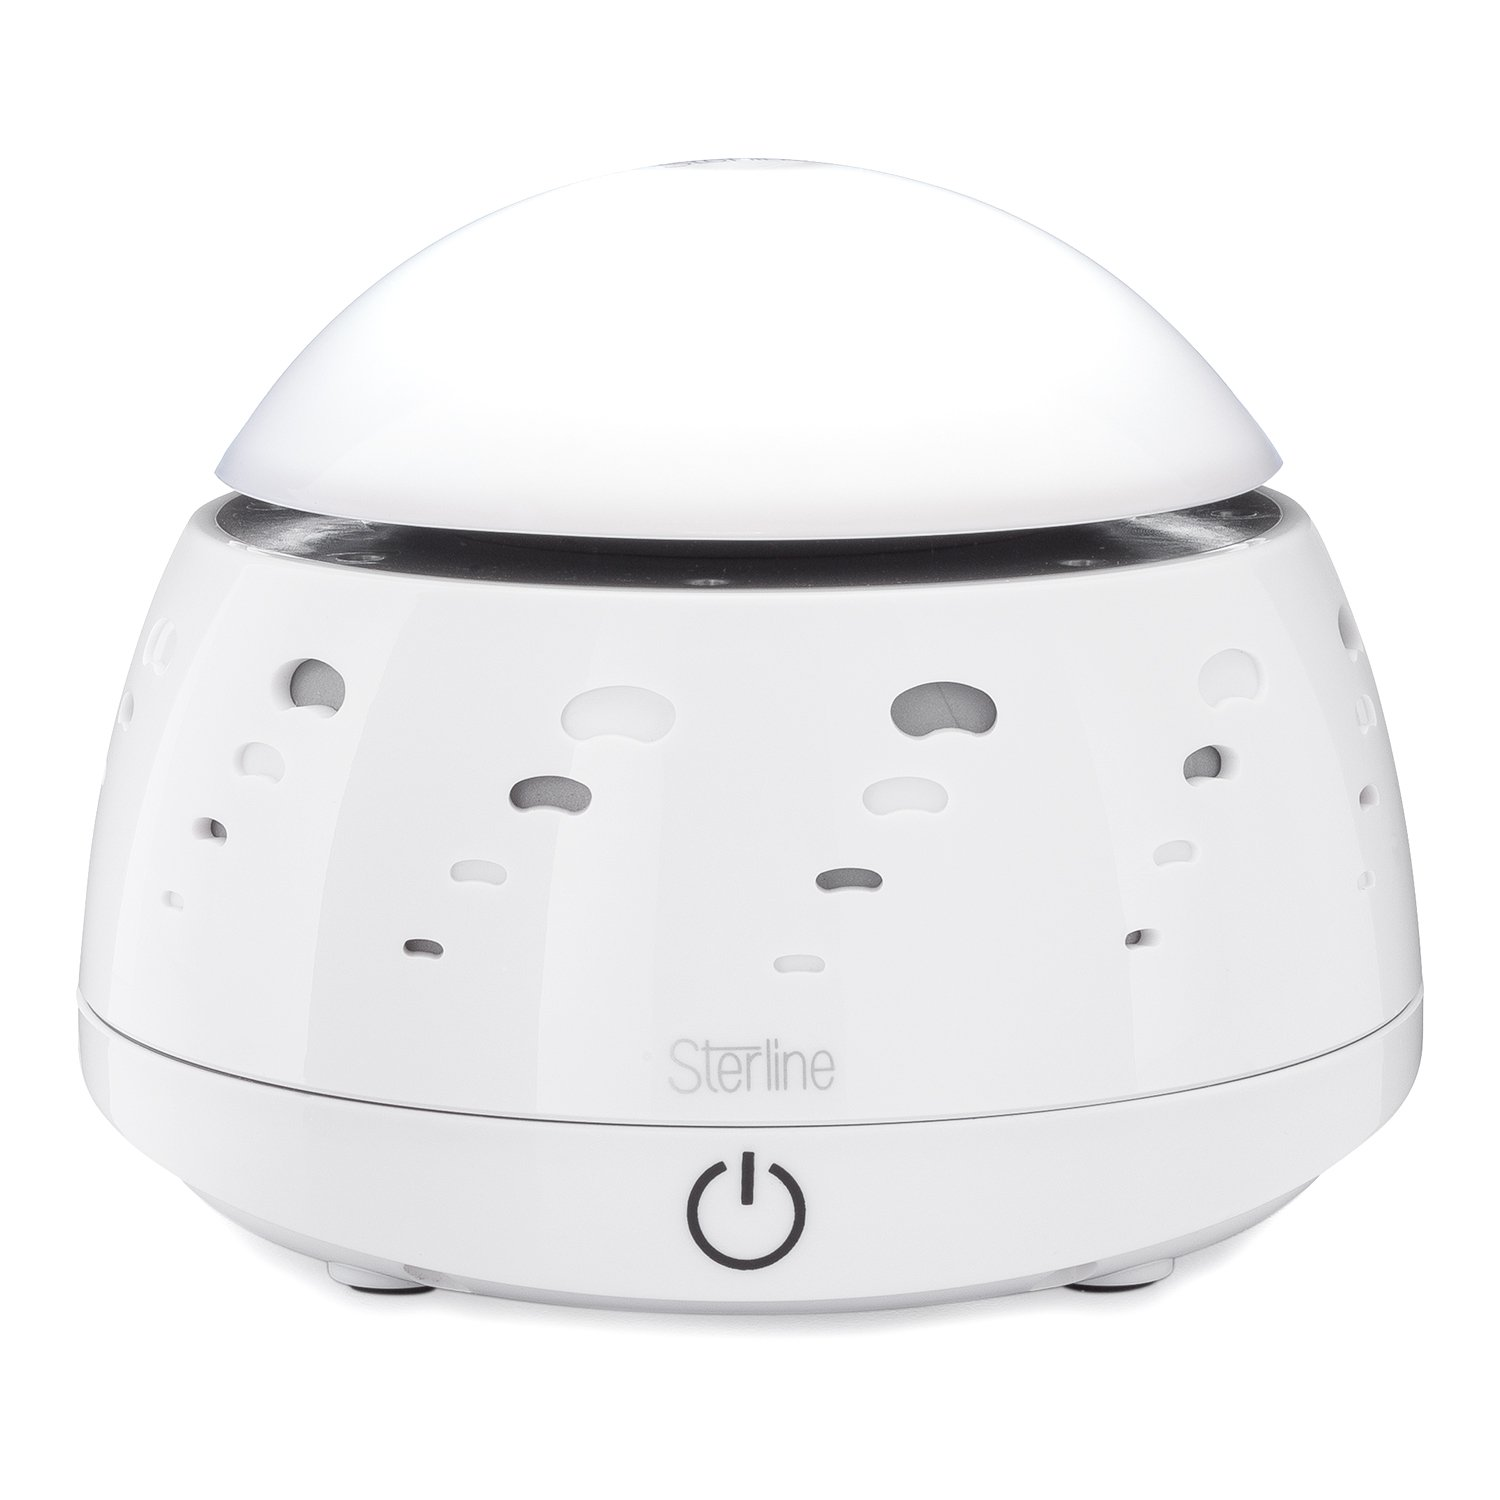 Sterline Electronic Natural Sound Machine with Night Light, White Noise Machine for Studying Work and Sleep, Sound Maker for Soothing Background Noise Reduction, White